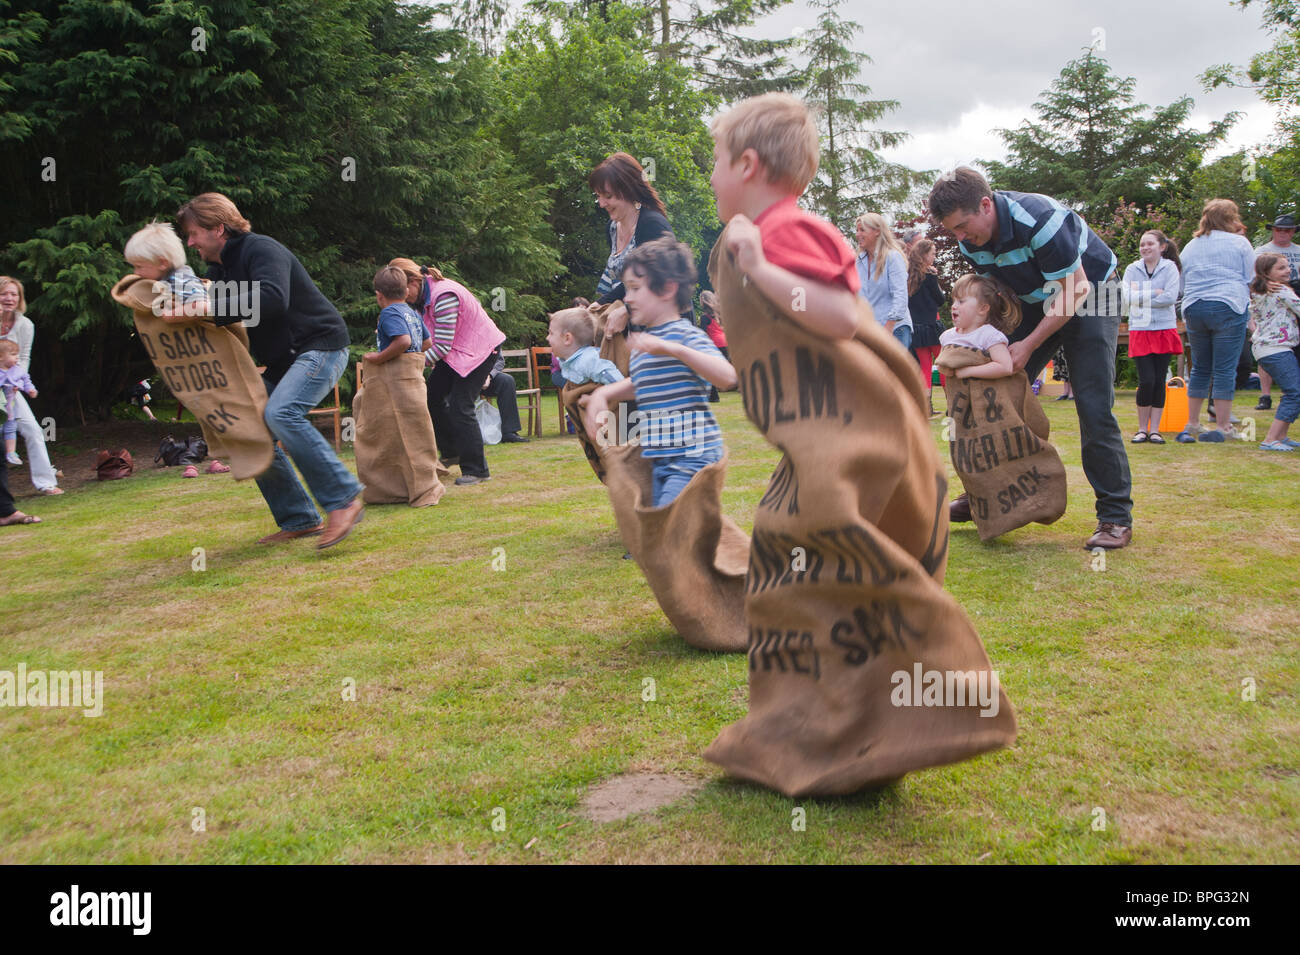 Children compete in the sack race showing movement at a village fete in Weston , Suffolk , England , Great Britain Stock Photo